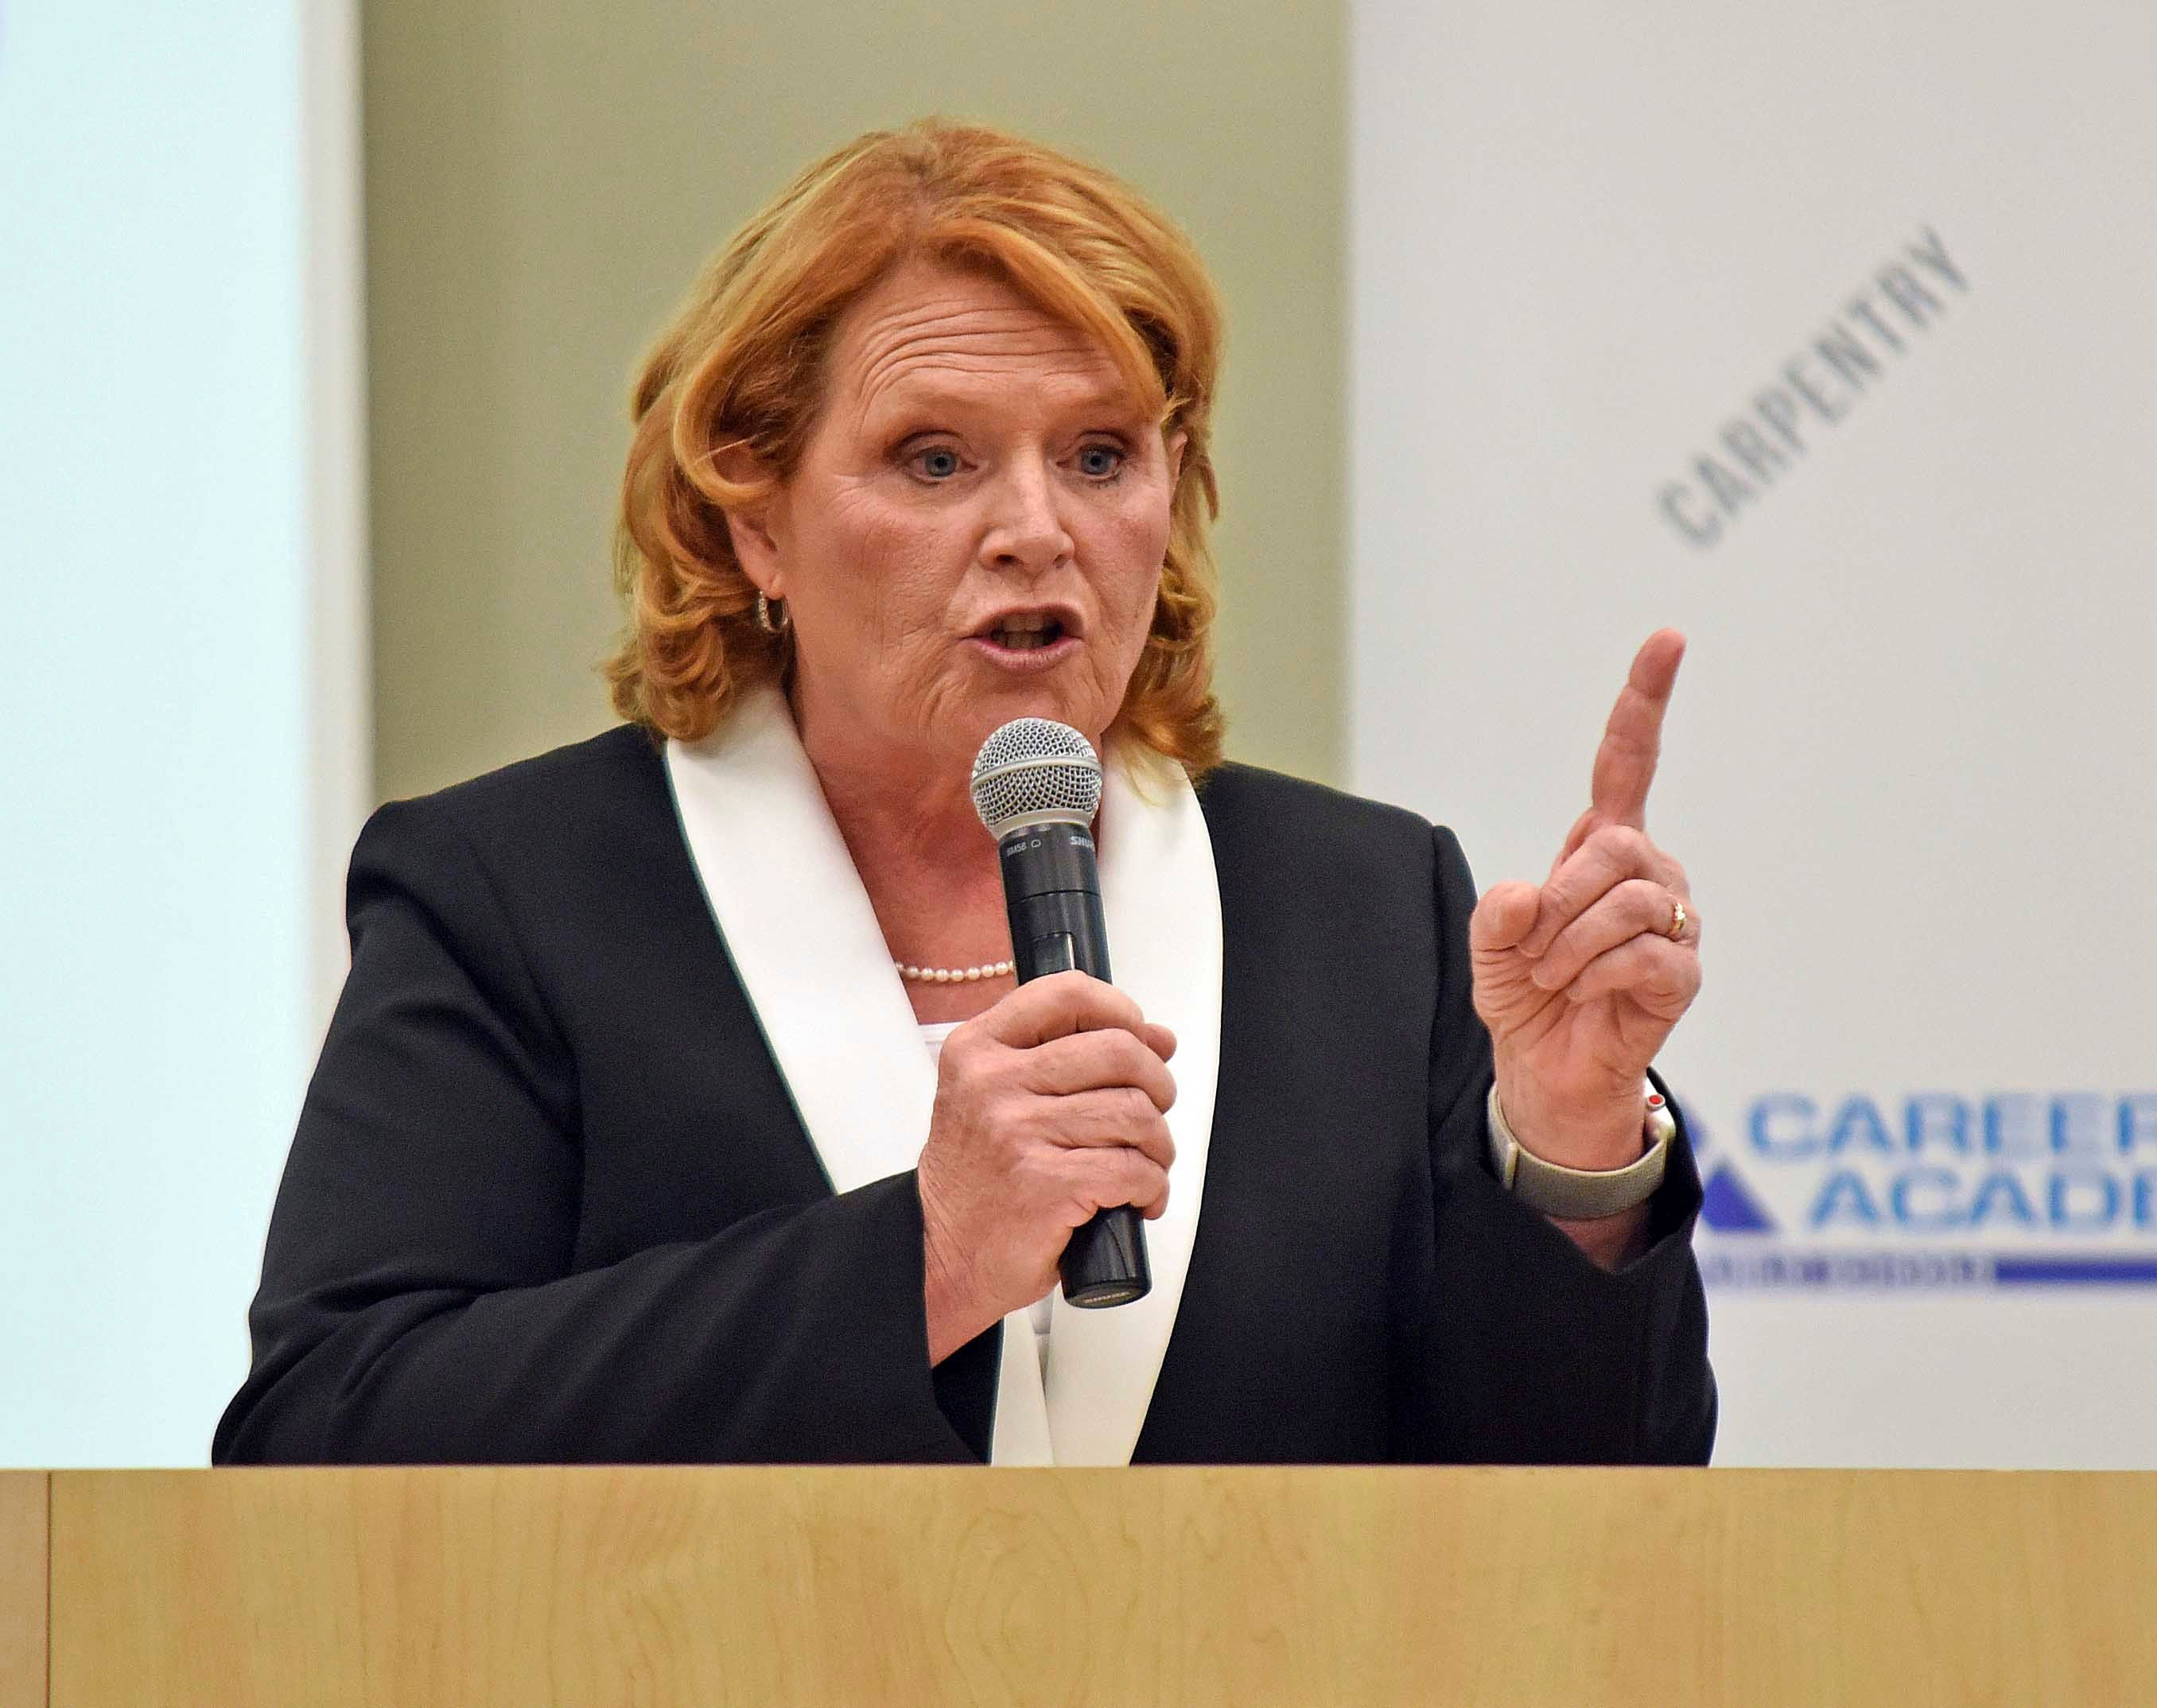 Sen. Heidi Heitkamp (D-N.D.) is an underdog in her re-election bid against Rep. Kevin Cramer (R-N.D.).